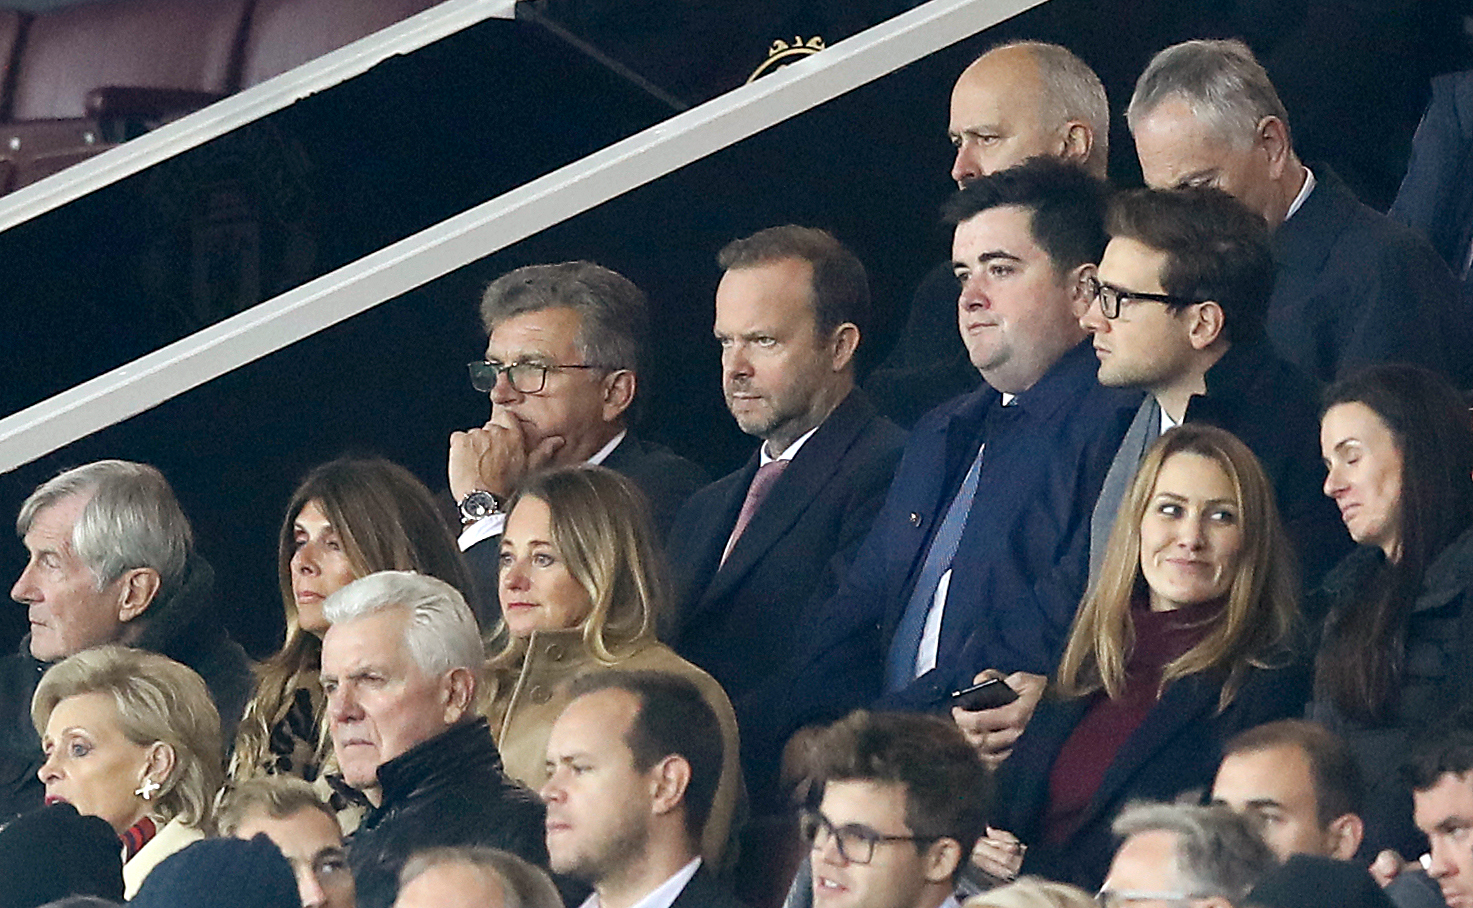 Manchester United executive vice-chairman Ed Woodward has been in the spotlight